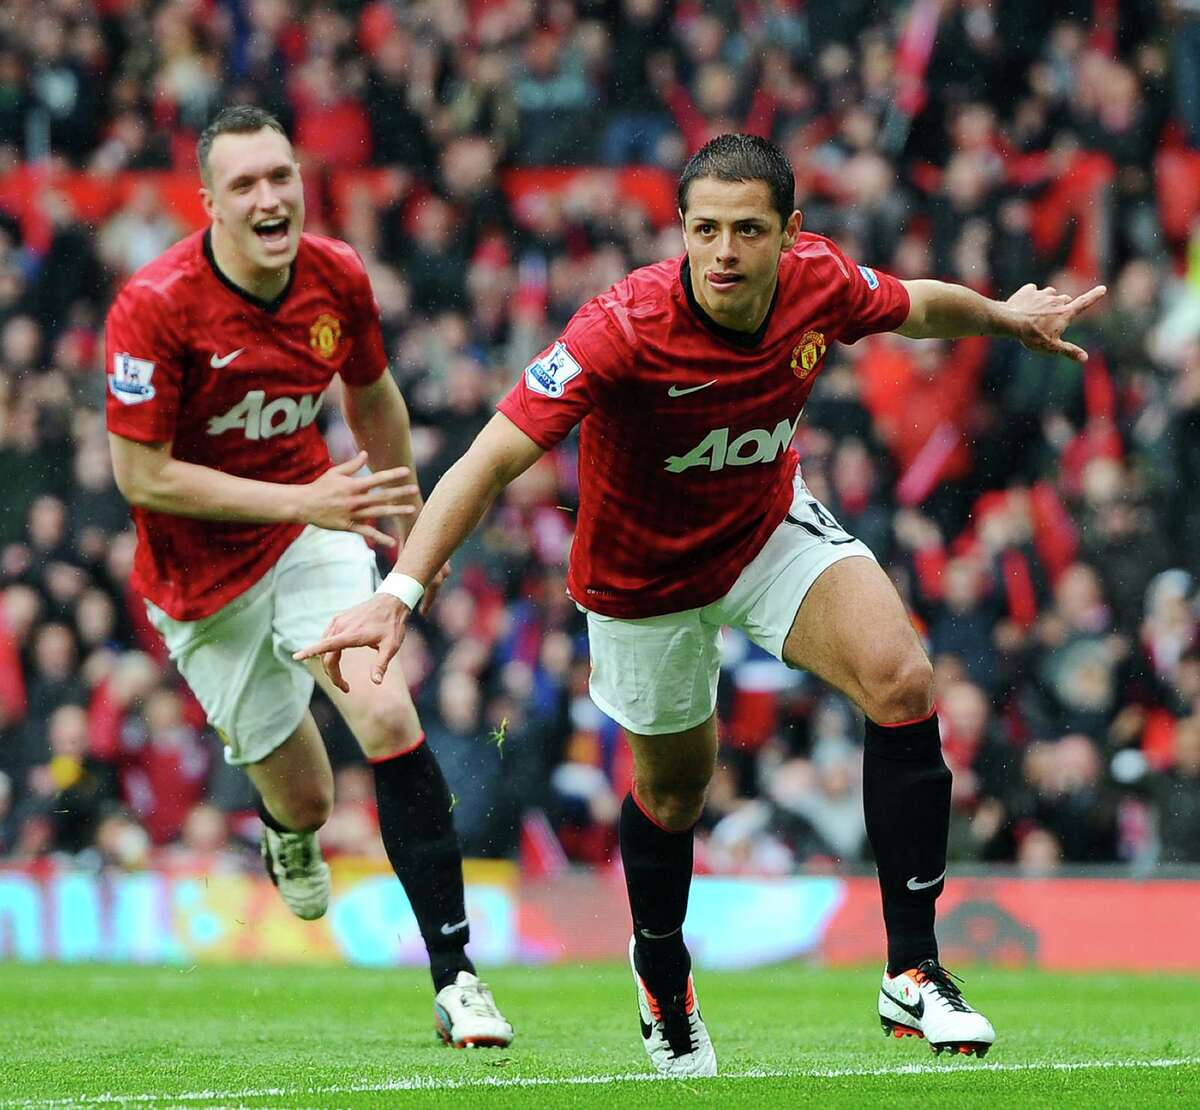 Manchester United's Mexican forward Javier Hernandez (C) celebrates scoring the opening goal during the English Premier League football match between Manchester United and Swansea City at Old Trafford in Manchester, northwest England, on May 12, 2013. AFP PHOTO / ANDREW YATES RESTRICTED TO EDITORIAL USE. No use with unauthorized audio, video, data, fixture lists, club/league logos or é¢Â€Âœliveé¢Â€Â services. Online in-match use limited to 45 images, no video emulation. No use in betting, games or single club/league/player publicationsANDREW YATES/AFP/Getty Images